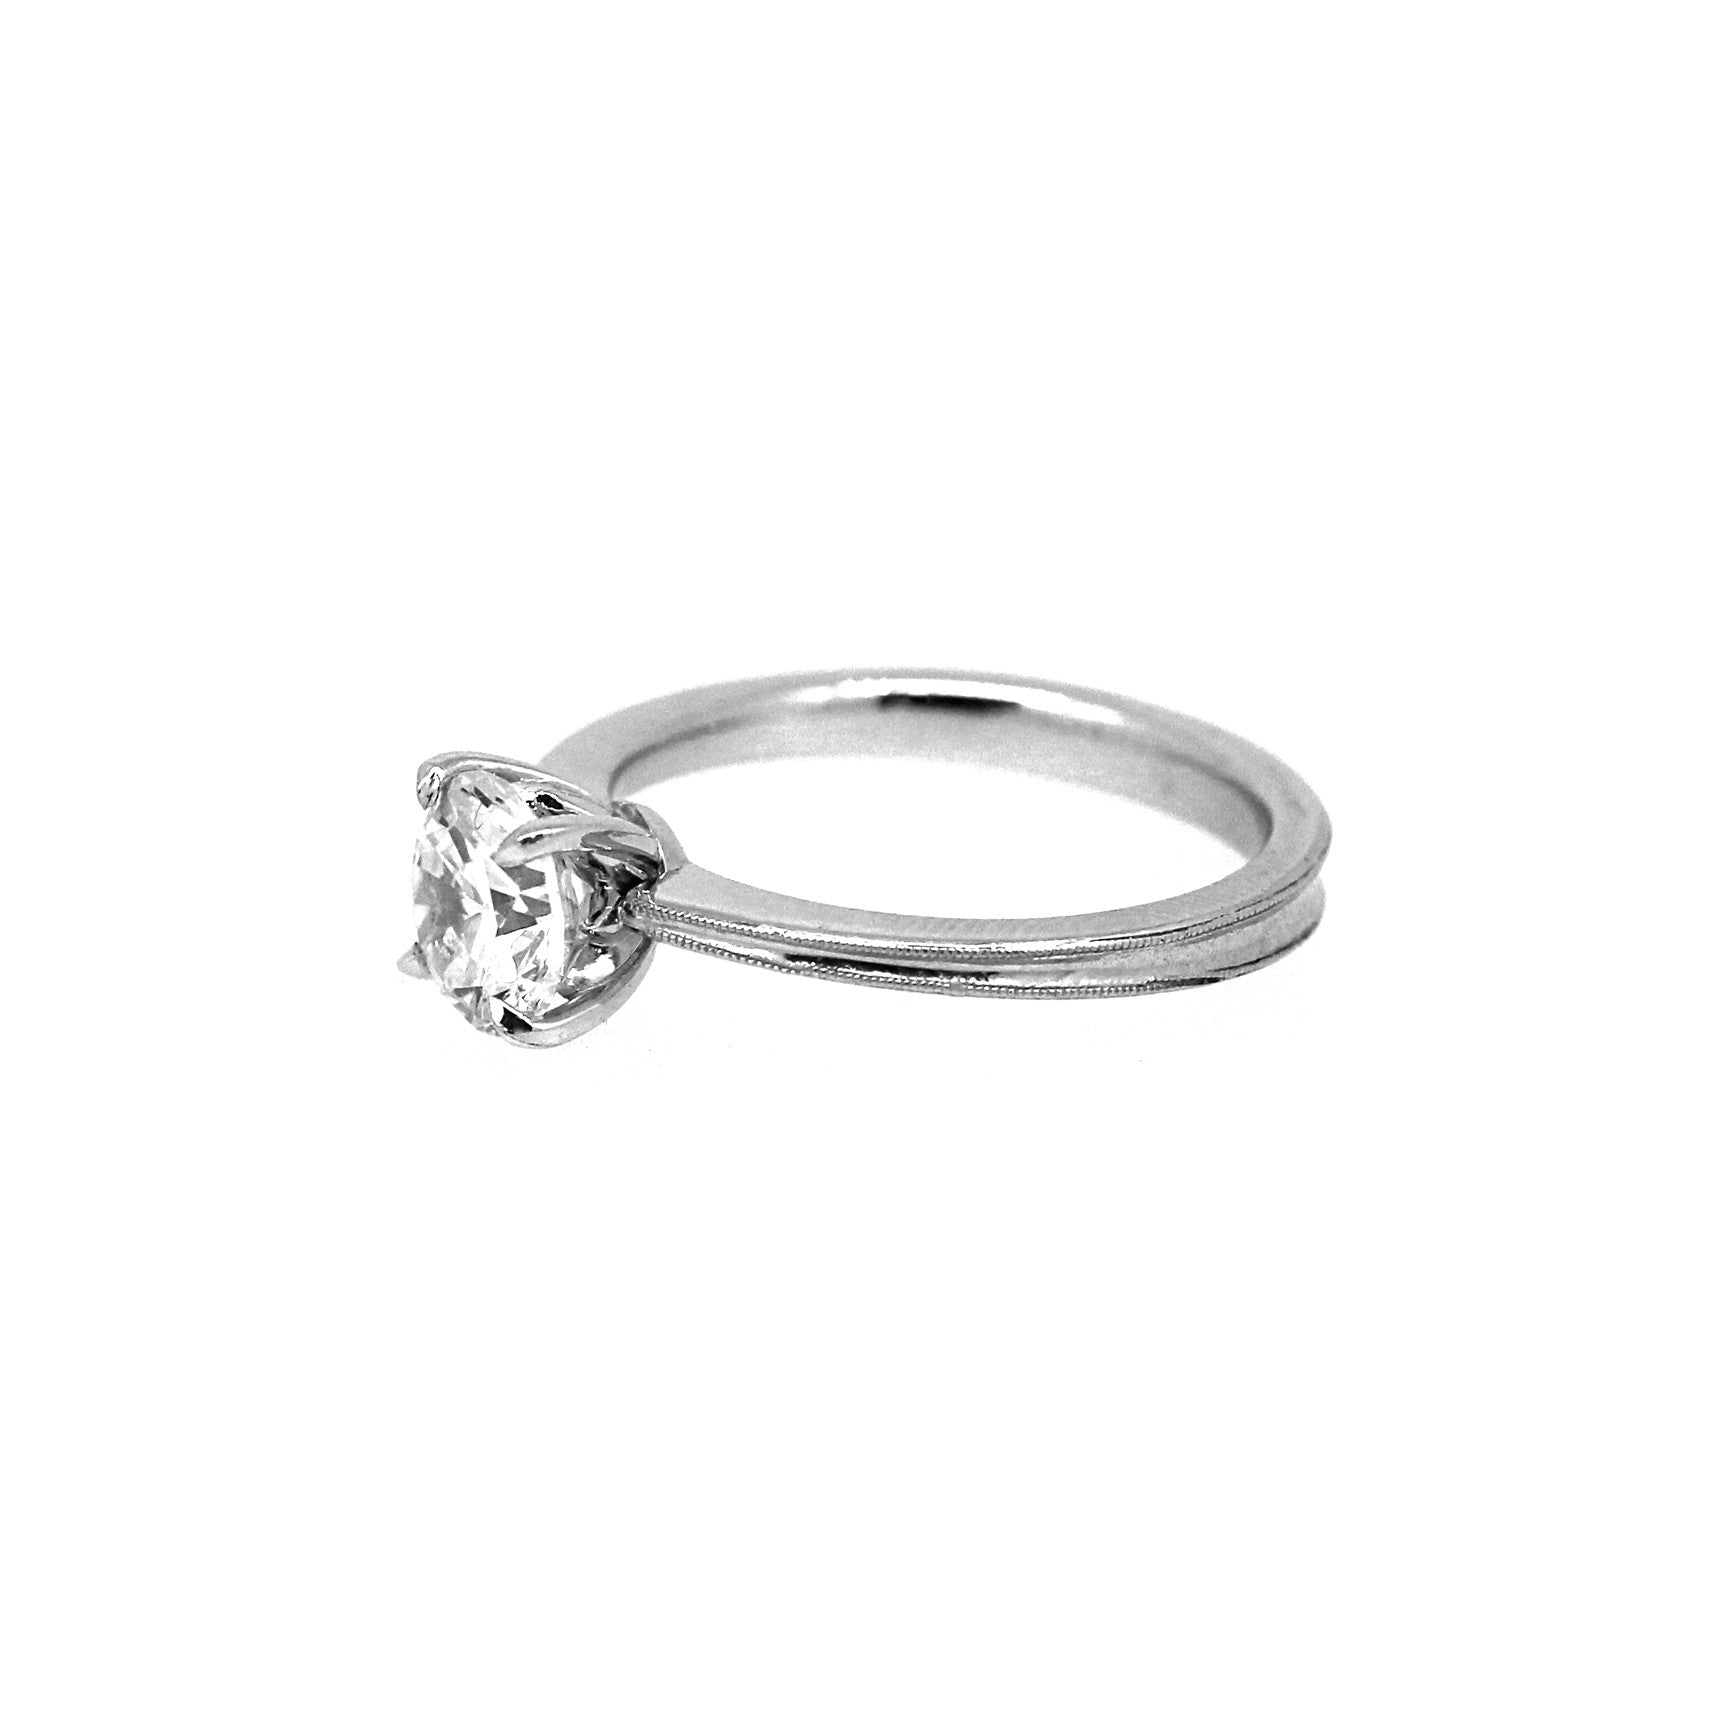 pt setting diamonds prongs pave for engagement on jl solitaire diamond engagment pointer accents small ring shank products perspective in view the with women platinum